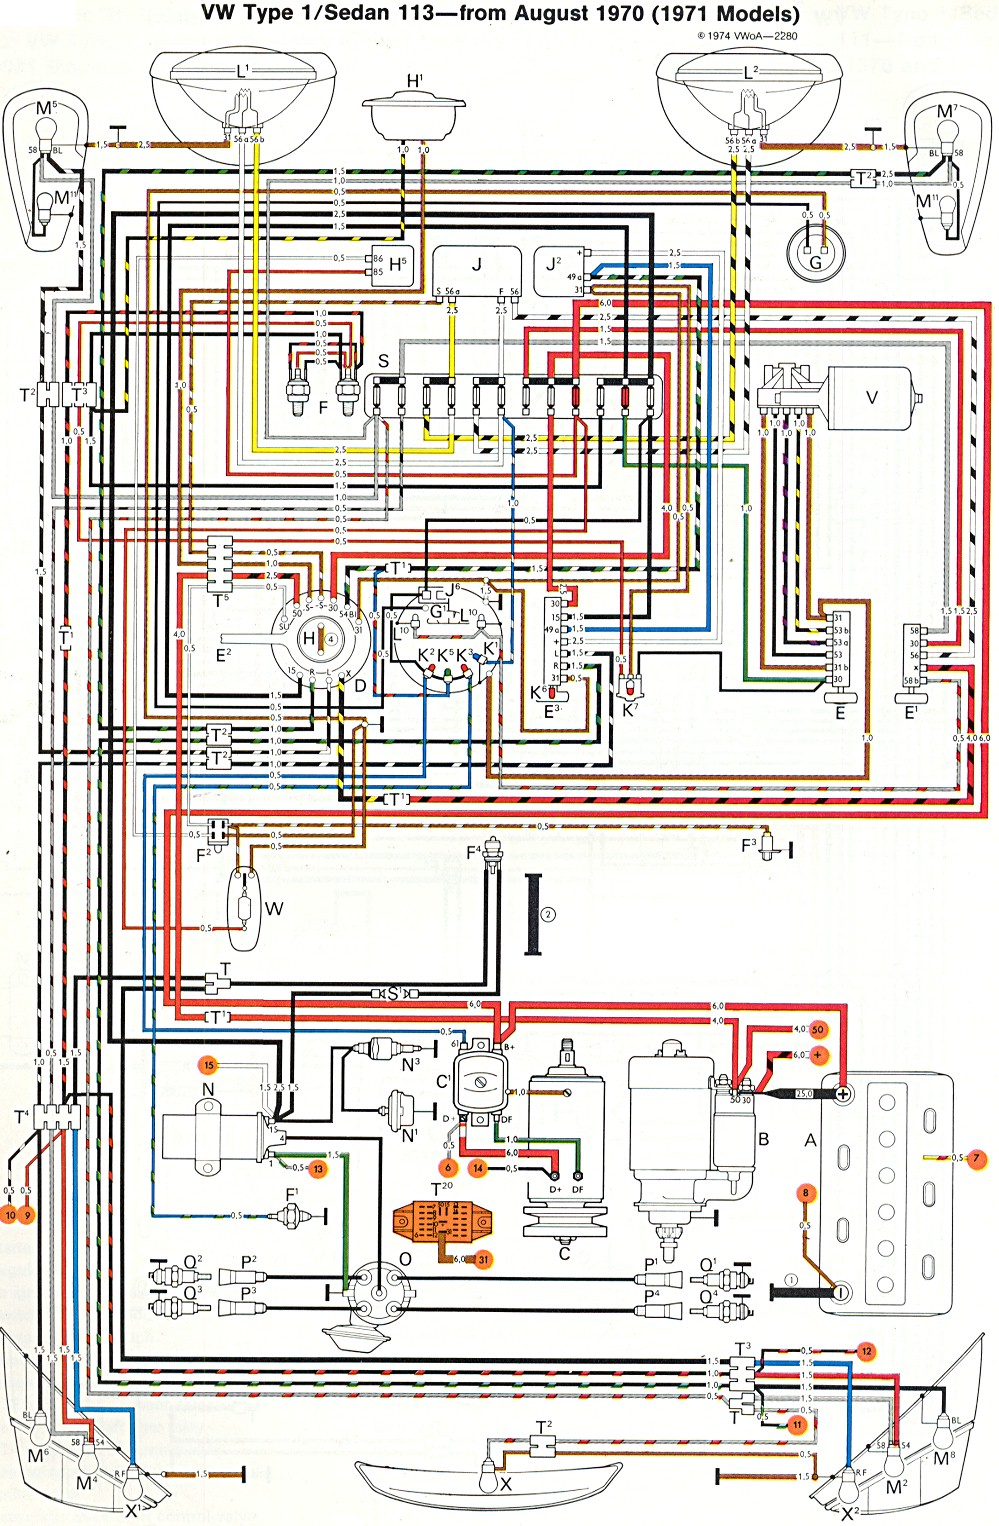 bug_super_71 1971 super beetle wiring diagram thegoldenbug com 1973 vw wiring diagram at pacquiaovsvargaslive.co